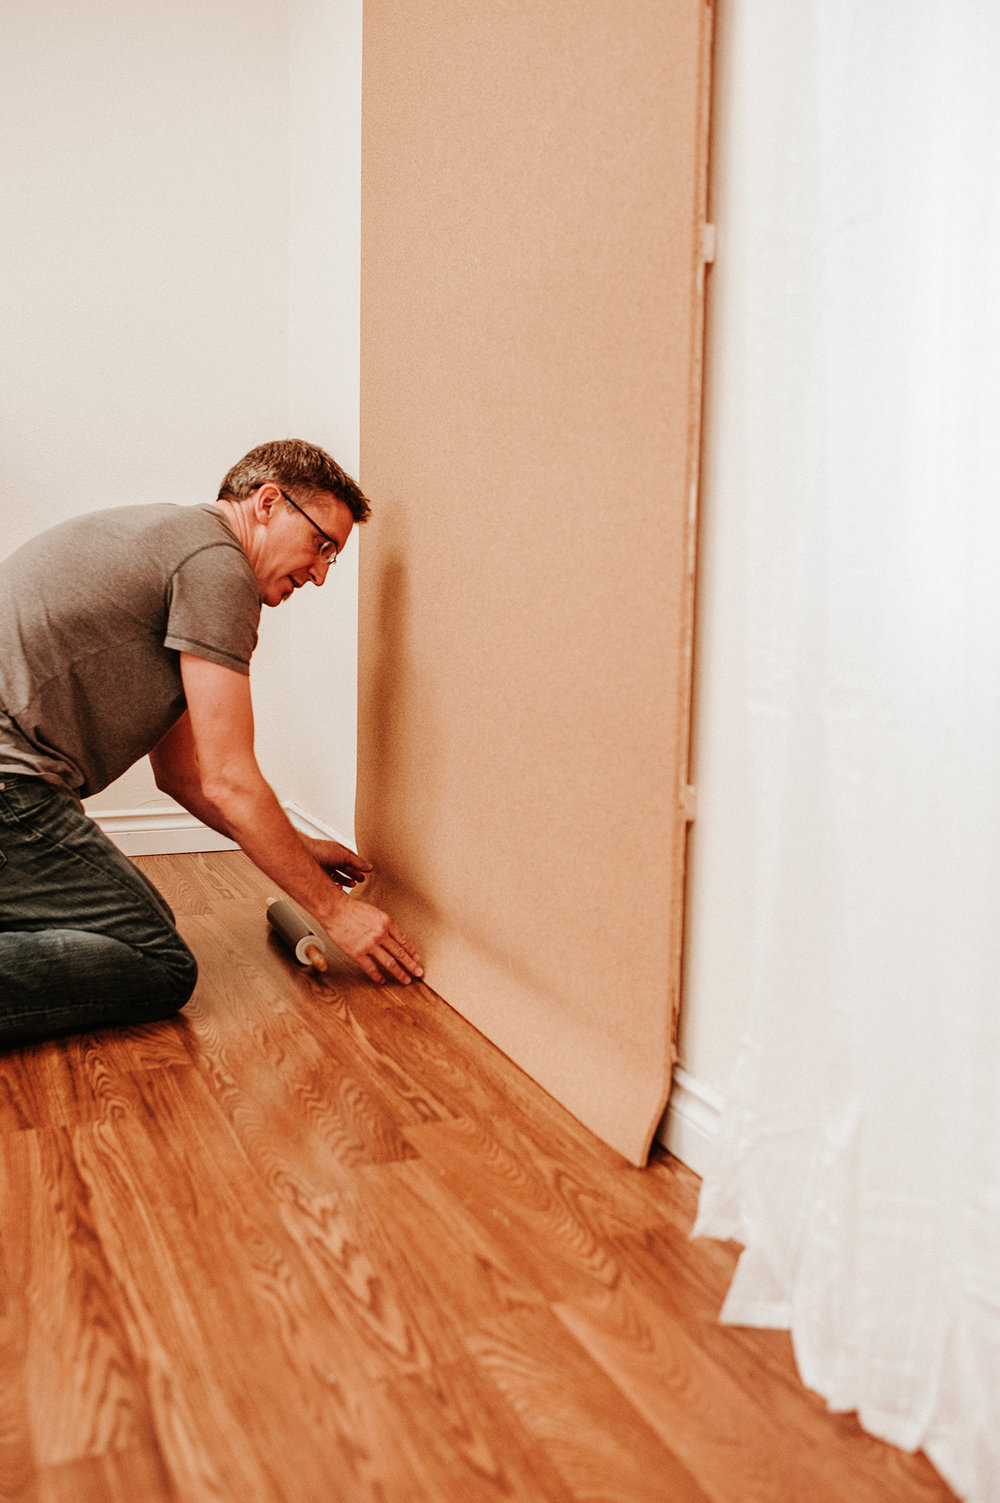 diy-office-space-how-to-install-cork-board-wall.jpg